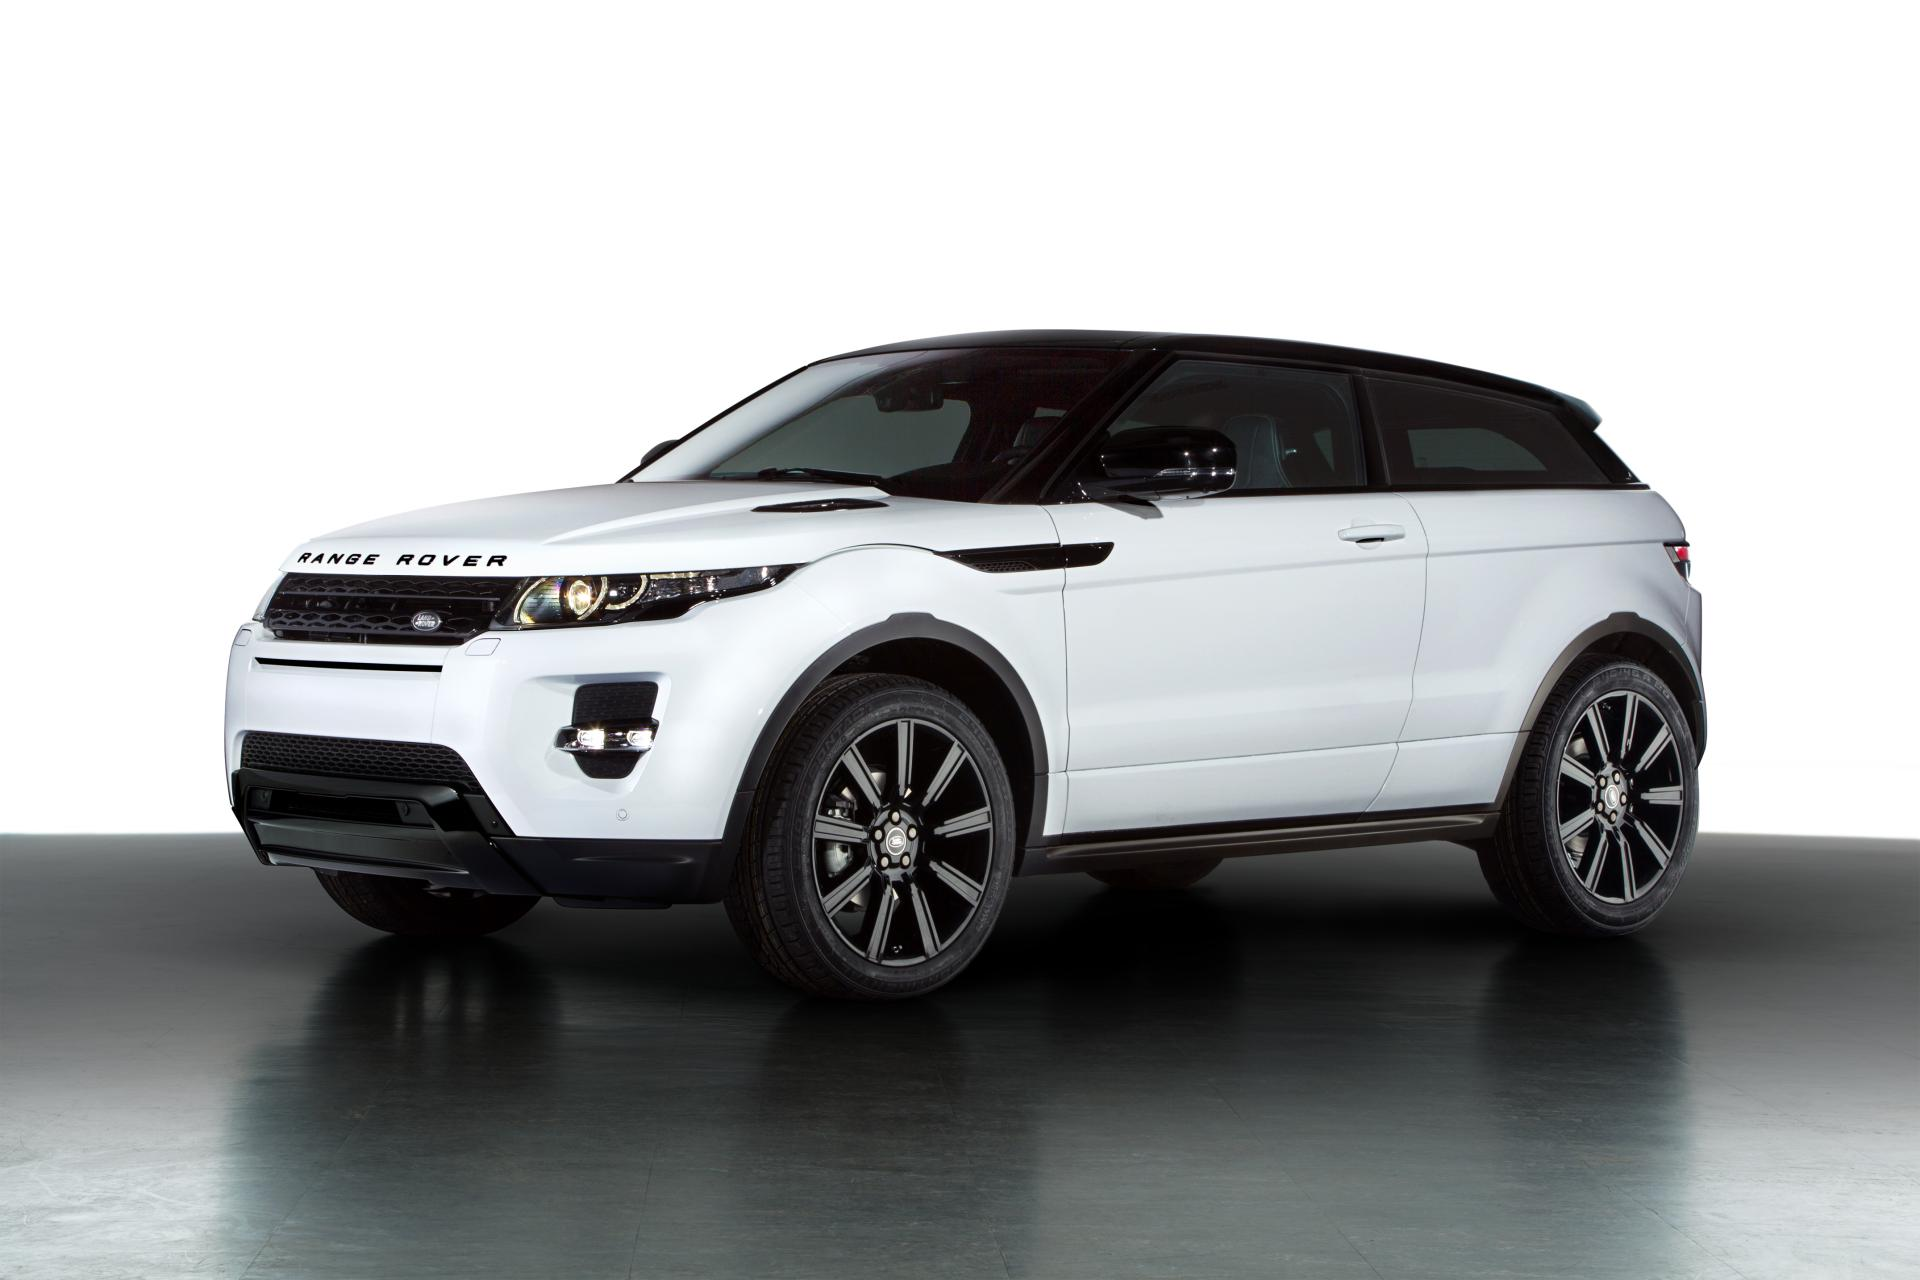 landrover cars land pack leather used evoque plus so rover tech pure heated bluetooth range meridian classifieds